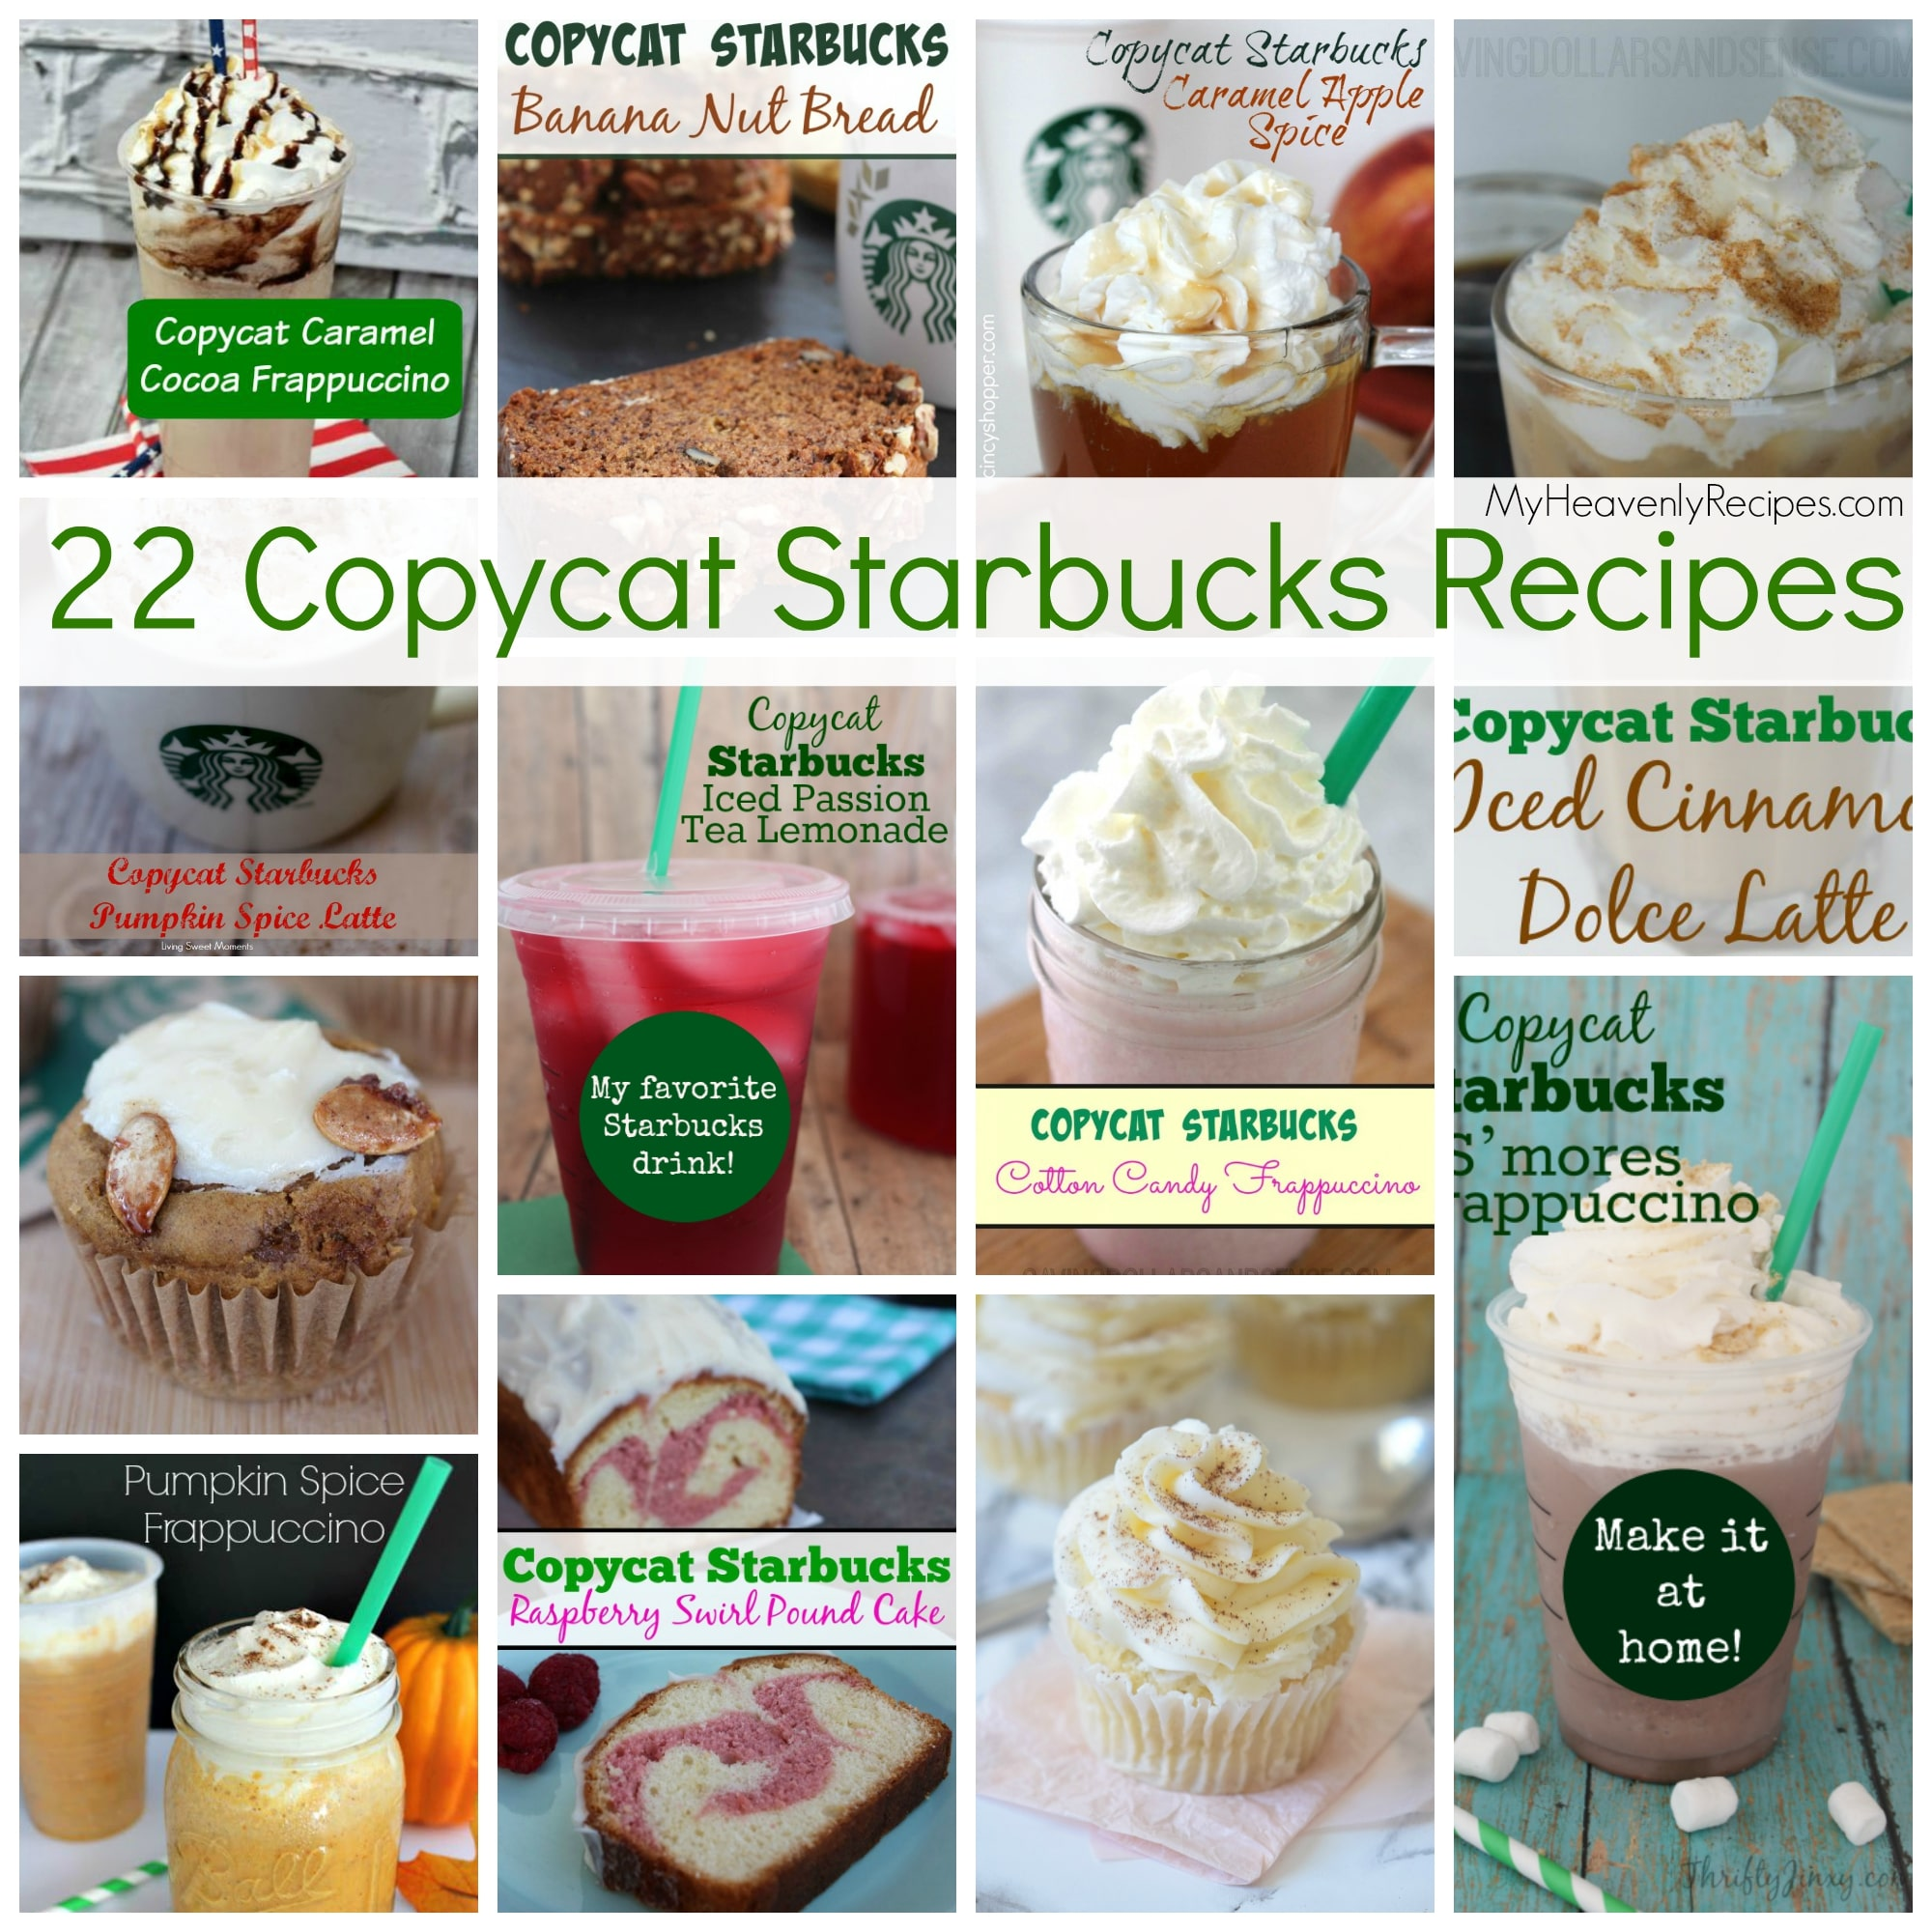 We all love Starbucks, but, the price can be hazardous to our pocketbooks. With these 22 CopyCat Starbucks recipes you're sure to find the recipes you love most at your local Starbucks.